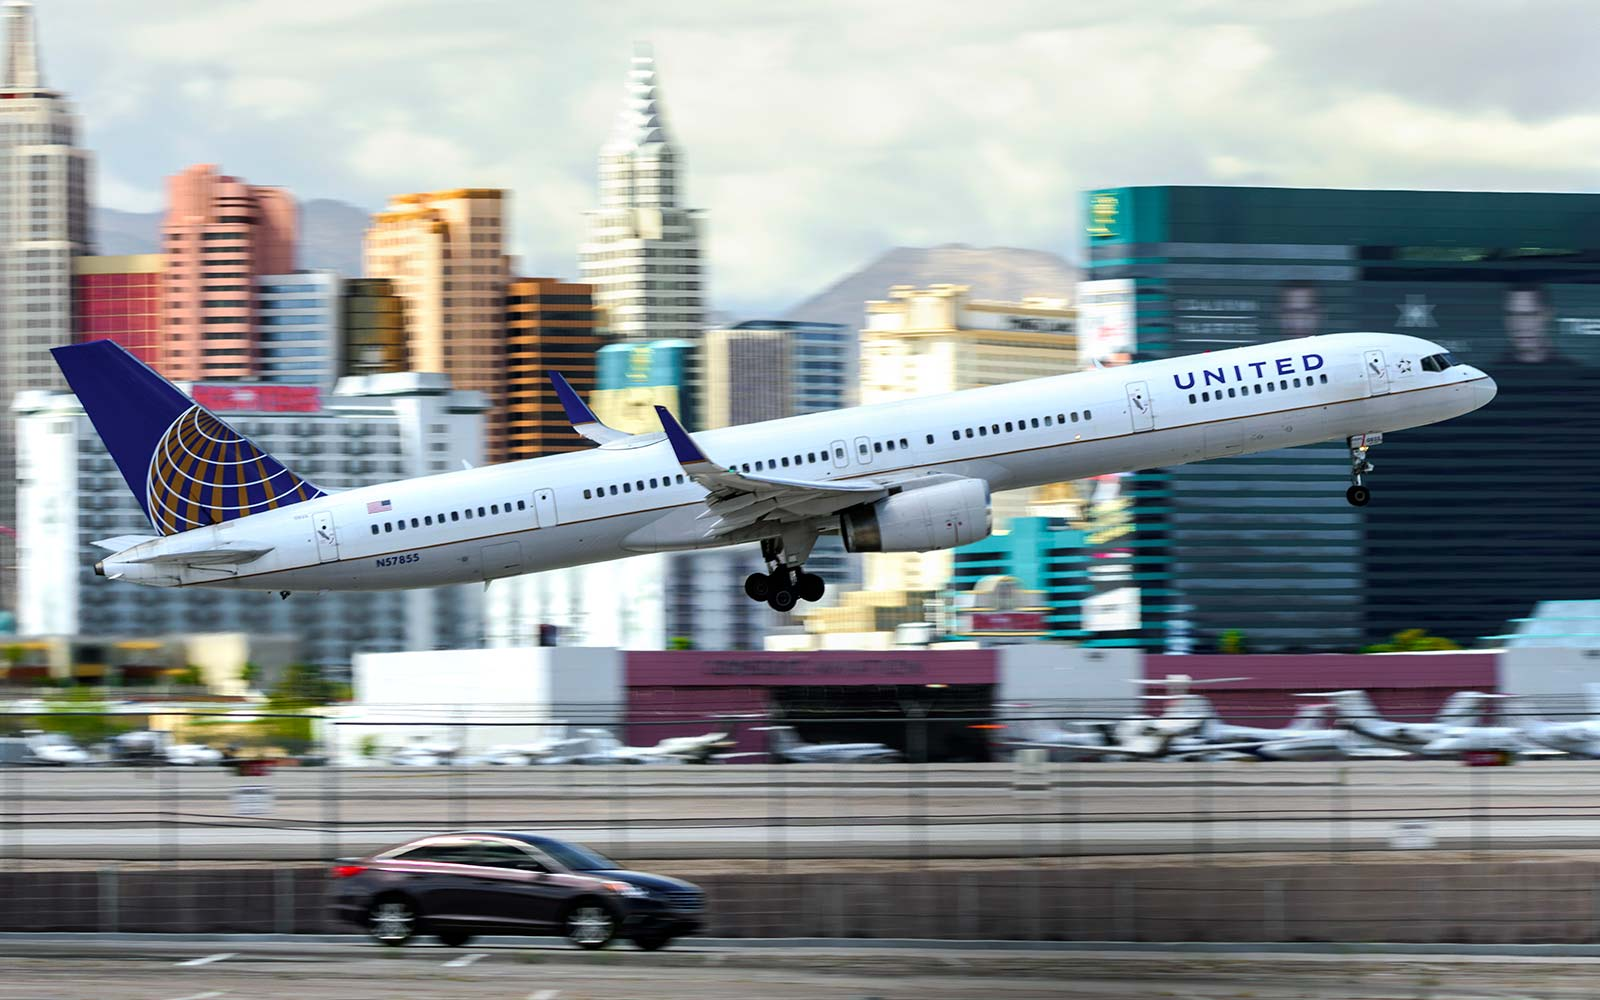 United Airlines Las Vegas McCarran Airport voucher